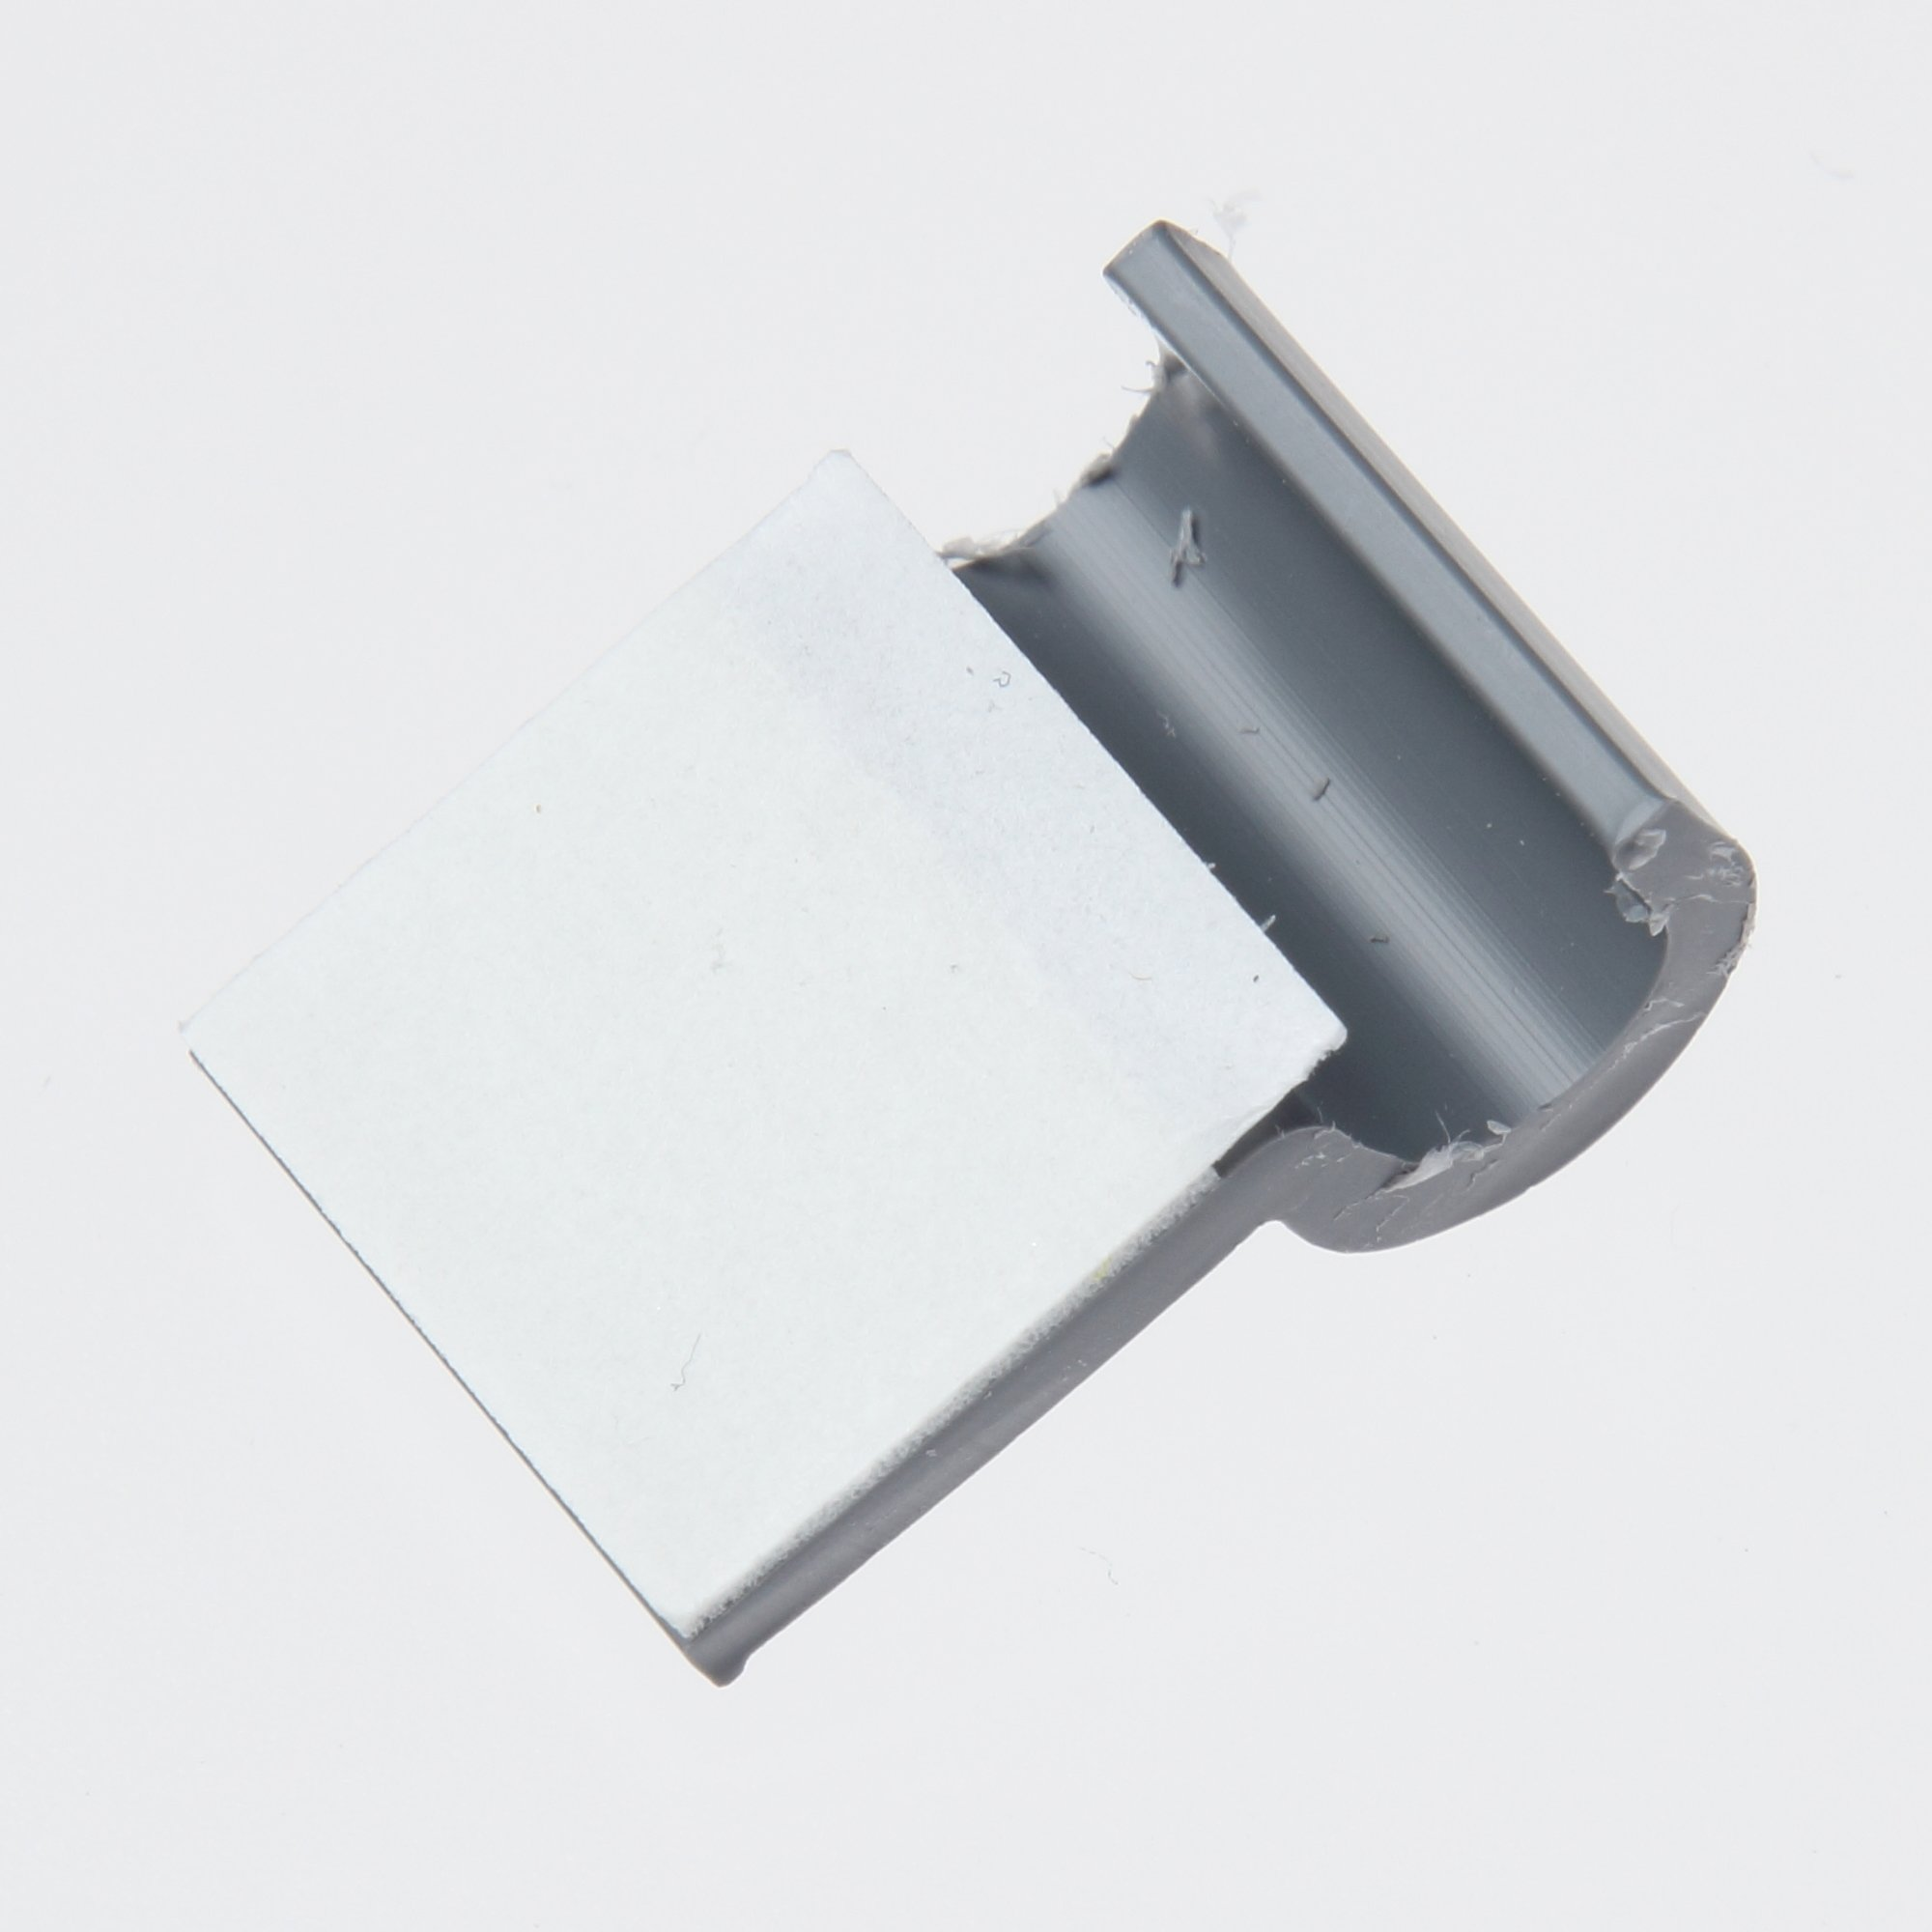 Panduit A1C12-A-C8 A1C Type Clip, Light Gray, Rubber Adhesive Type, 0.12'' Max Bundle Diameter, 0.23'' Height, 0.63'' Width, 0.77'' Length (Pack of 100)